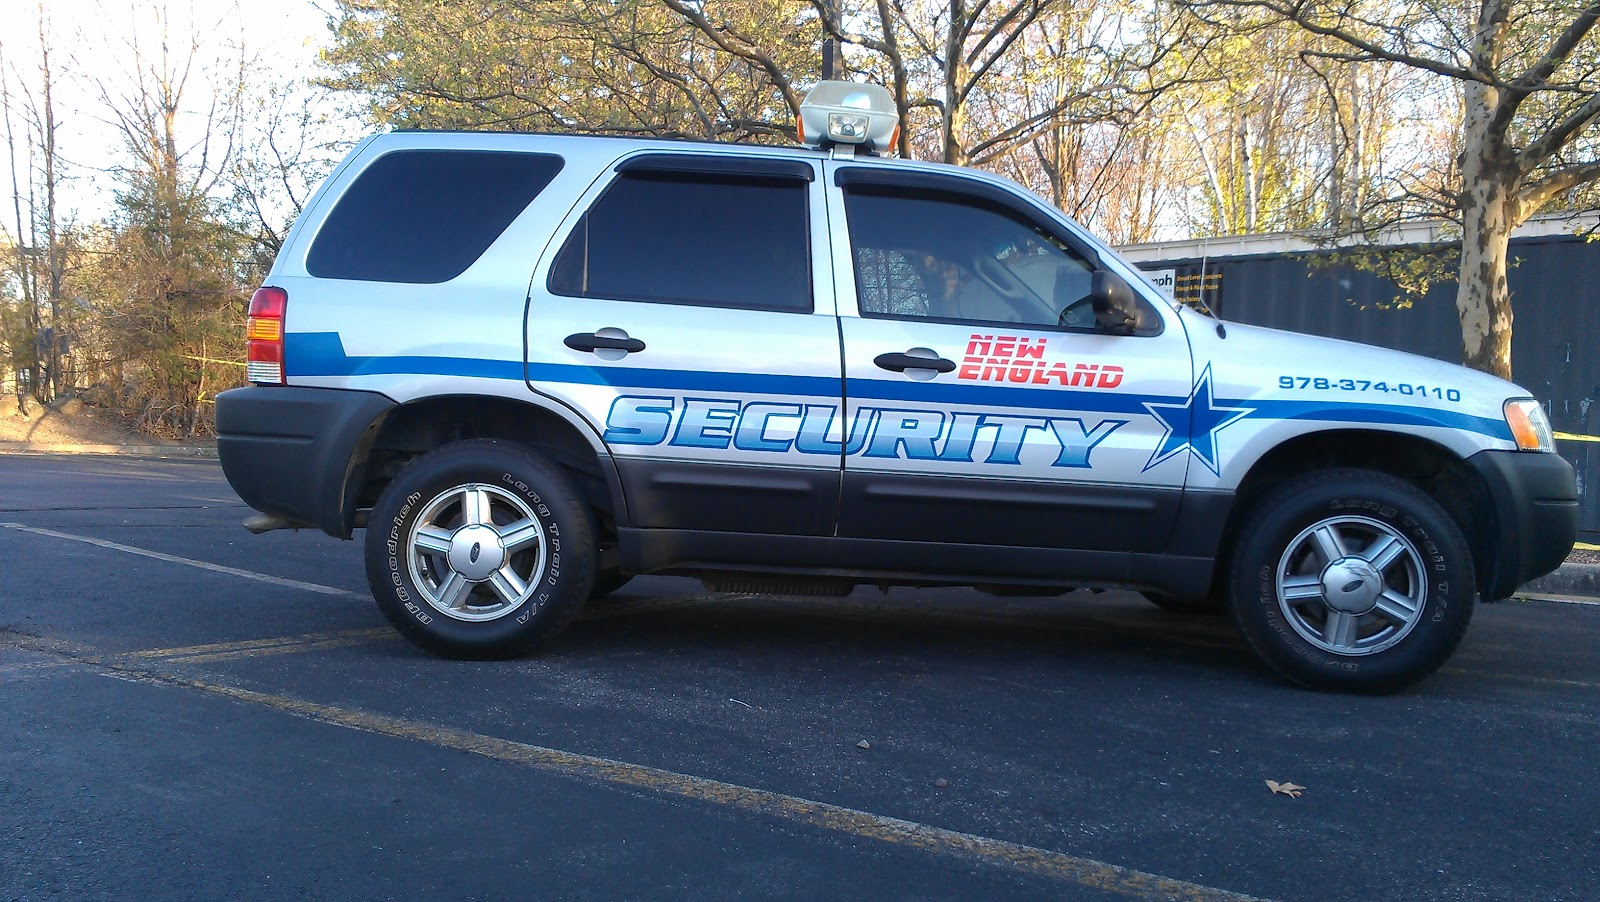 Boston Security Guard Companies New England Security